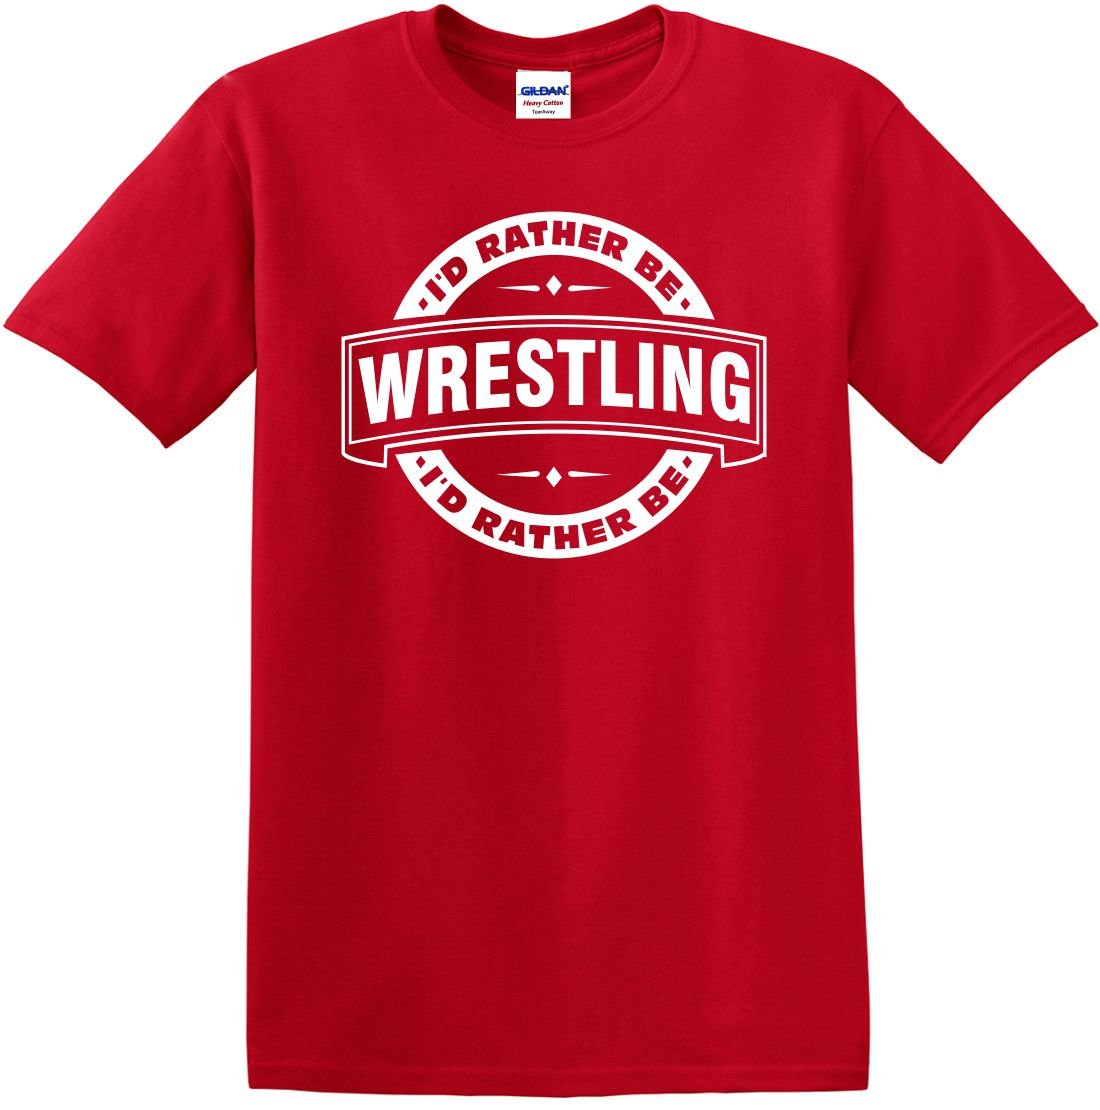 Youth T-Shirt ID Rather Be Wrestling (Badge) Small Funny Kids